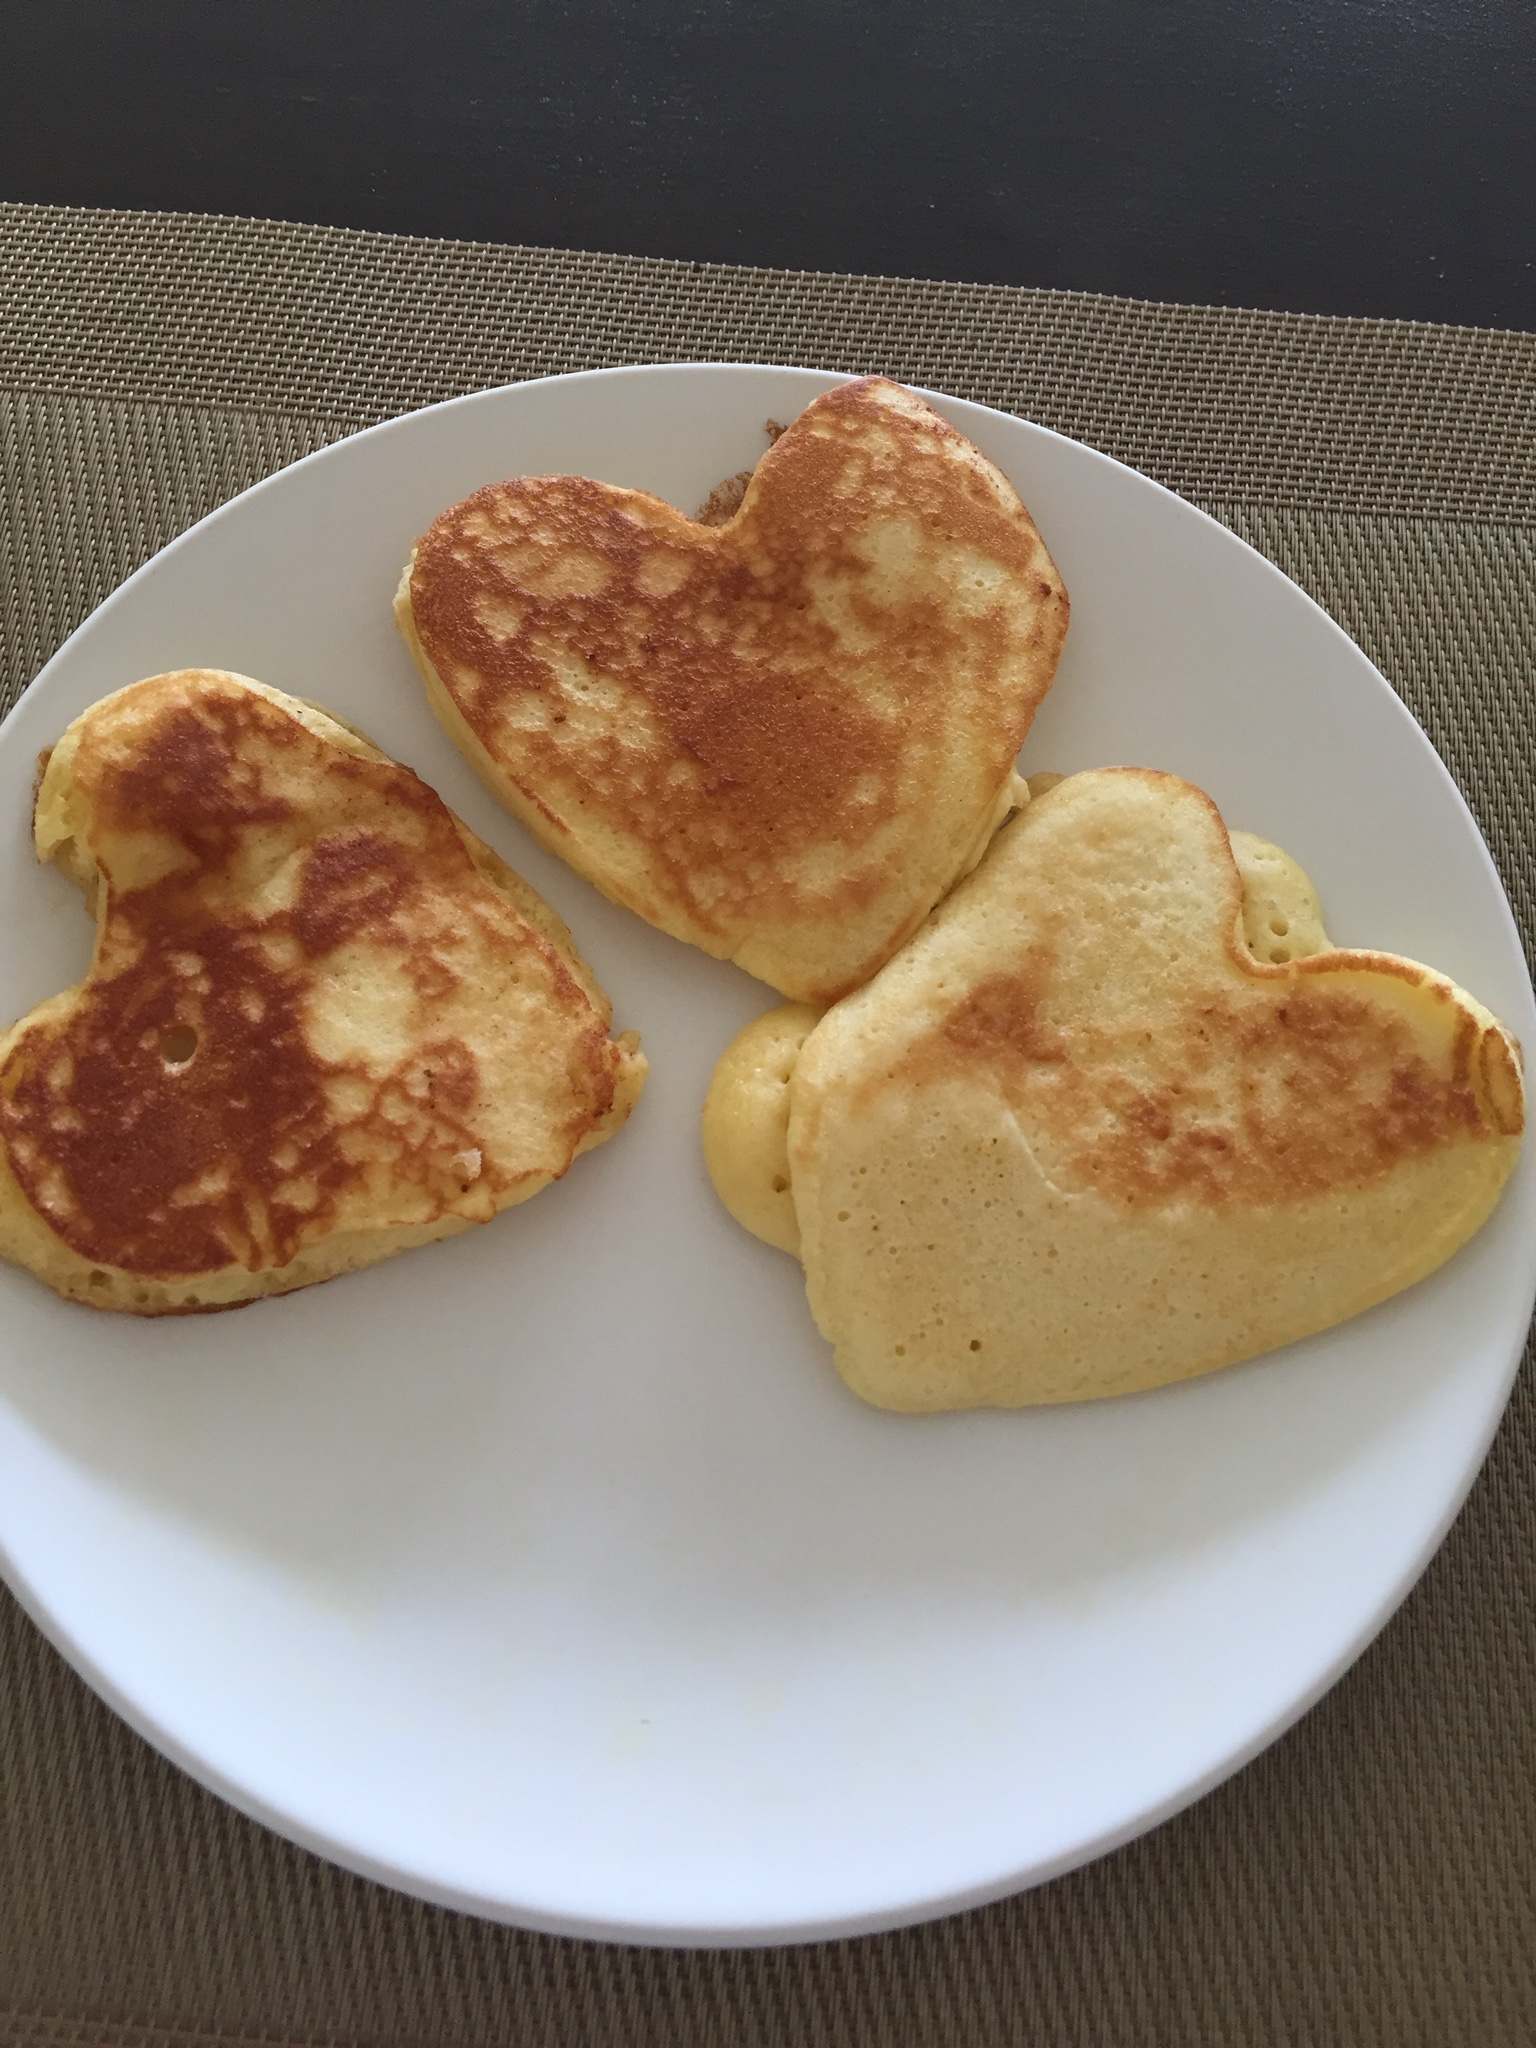 Heart-shaped pancakes courtesy of our host Imran